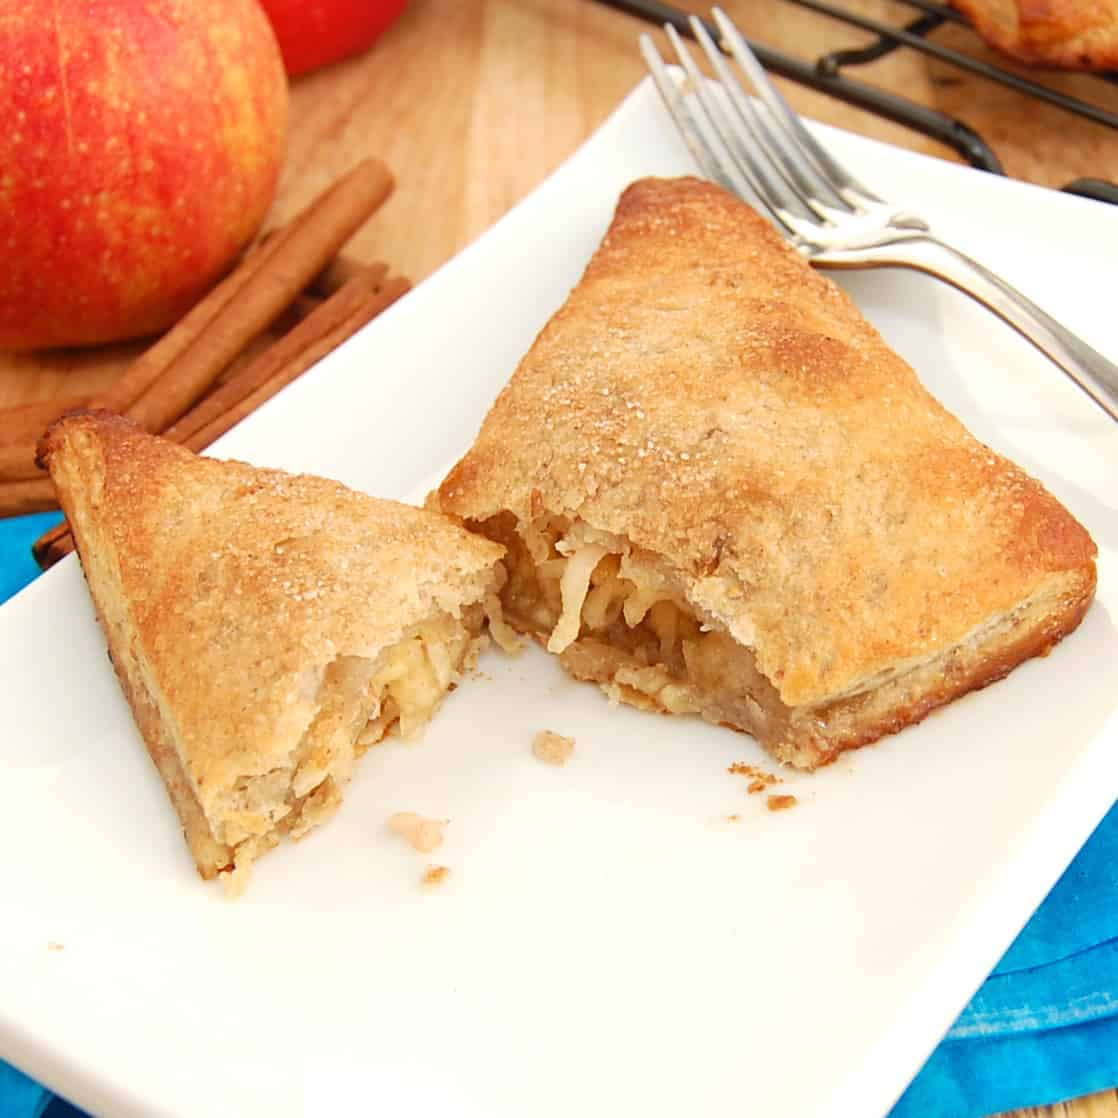 Apple turnover cut in half on plate